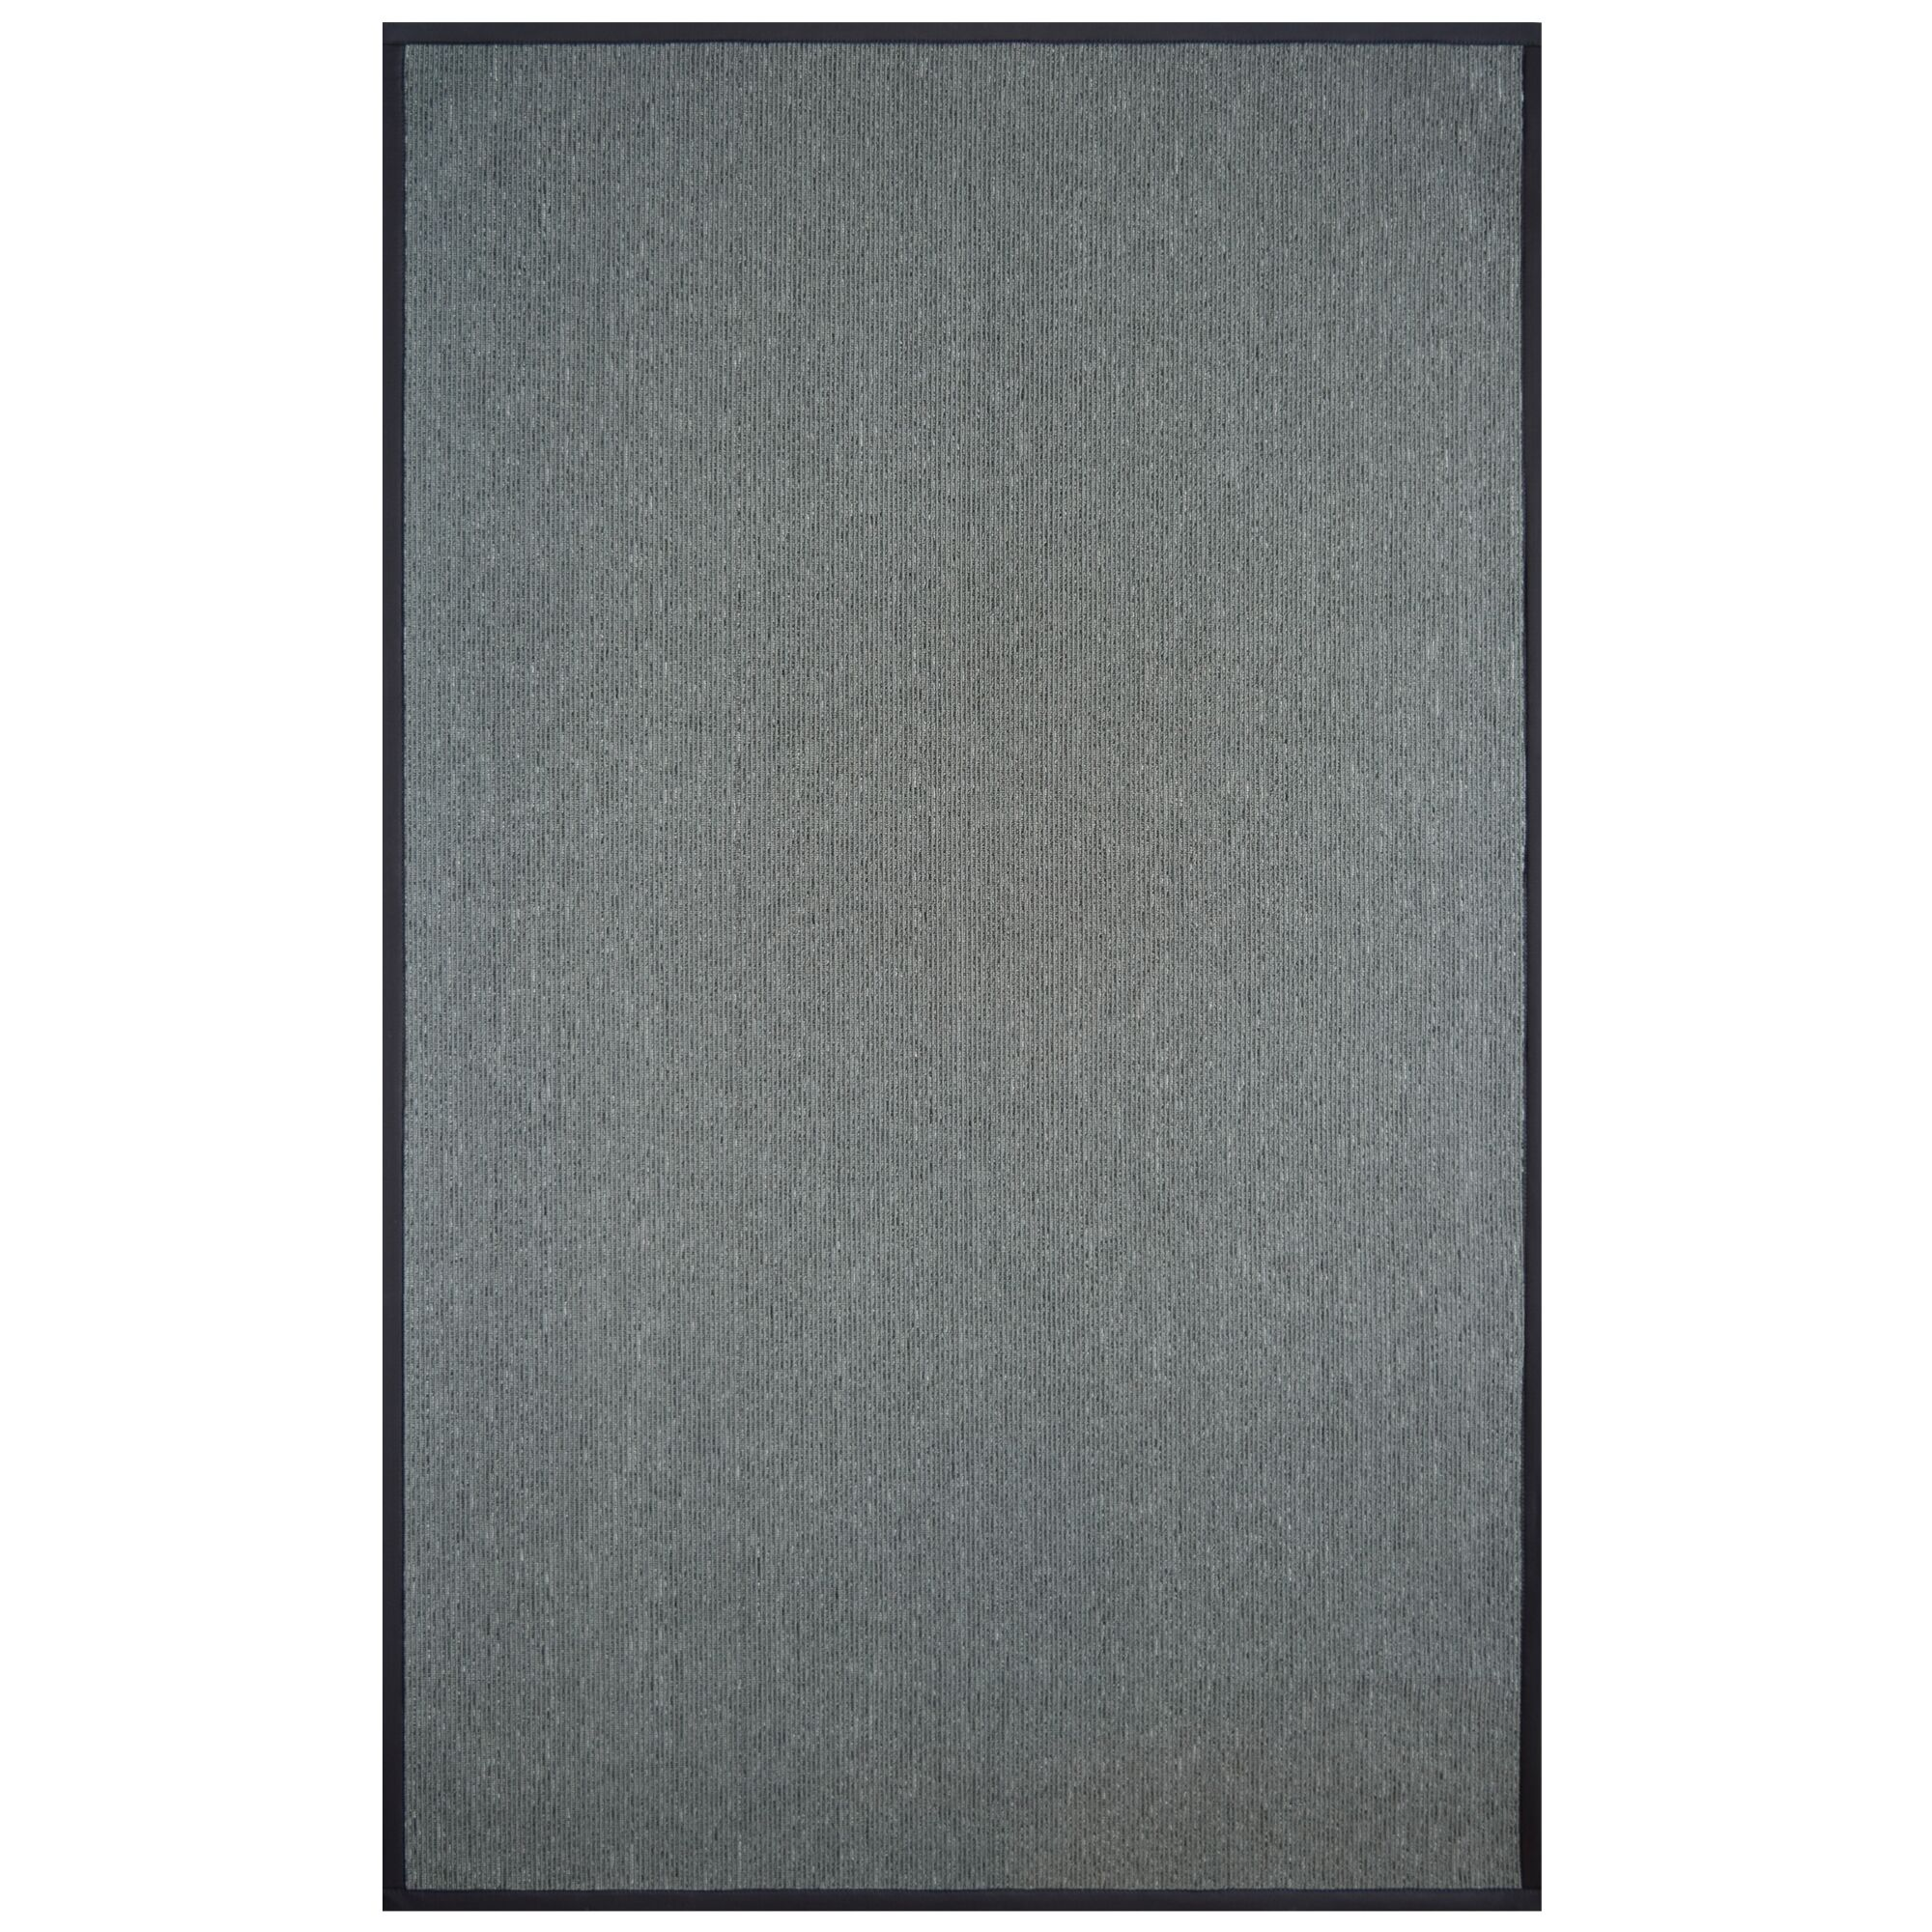 Ornelas Charcoal/Silver Area Rug Rug Size: Rectangle 4' x 6'